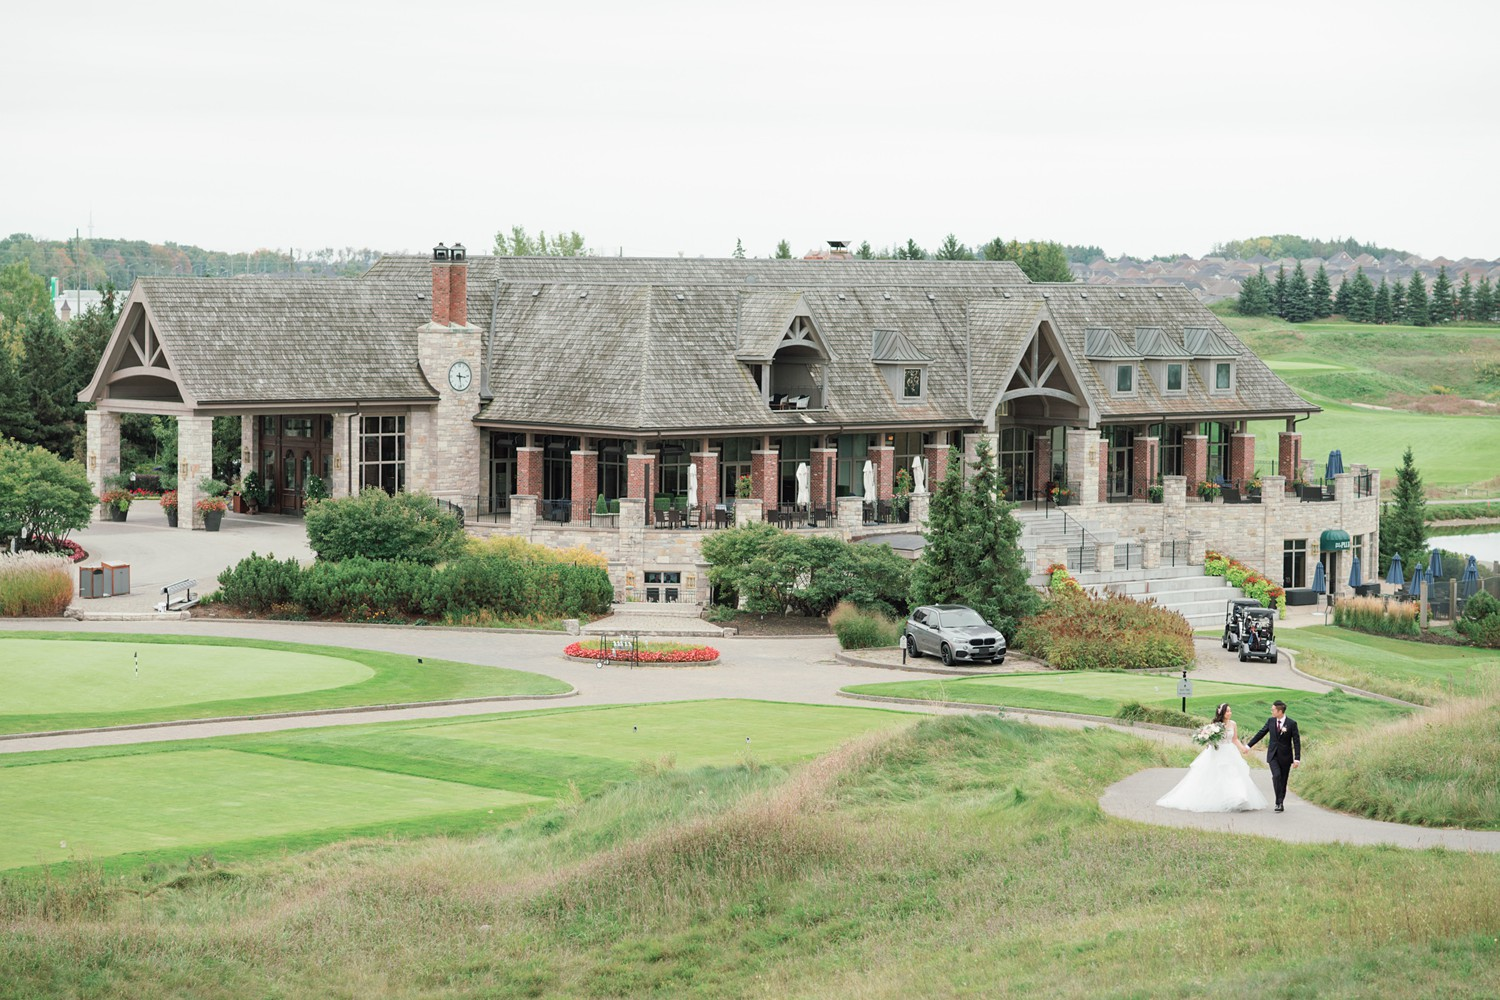 Bride_and_Groom_Eagles_Nest_Golf_Club_Wedding_Photos_Toronto_Wedding_Photographer-Rhythm_Photography